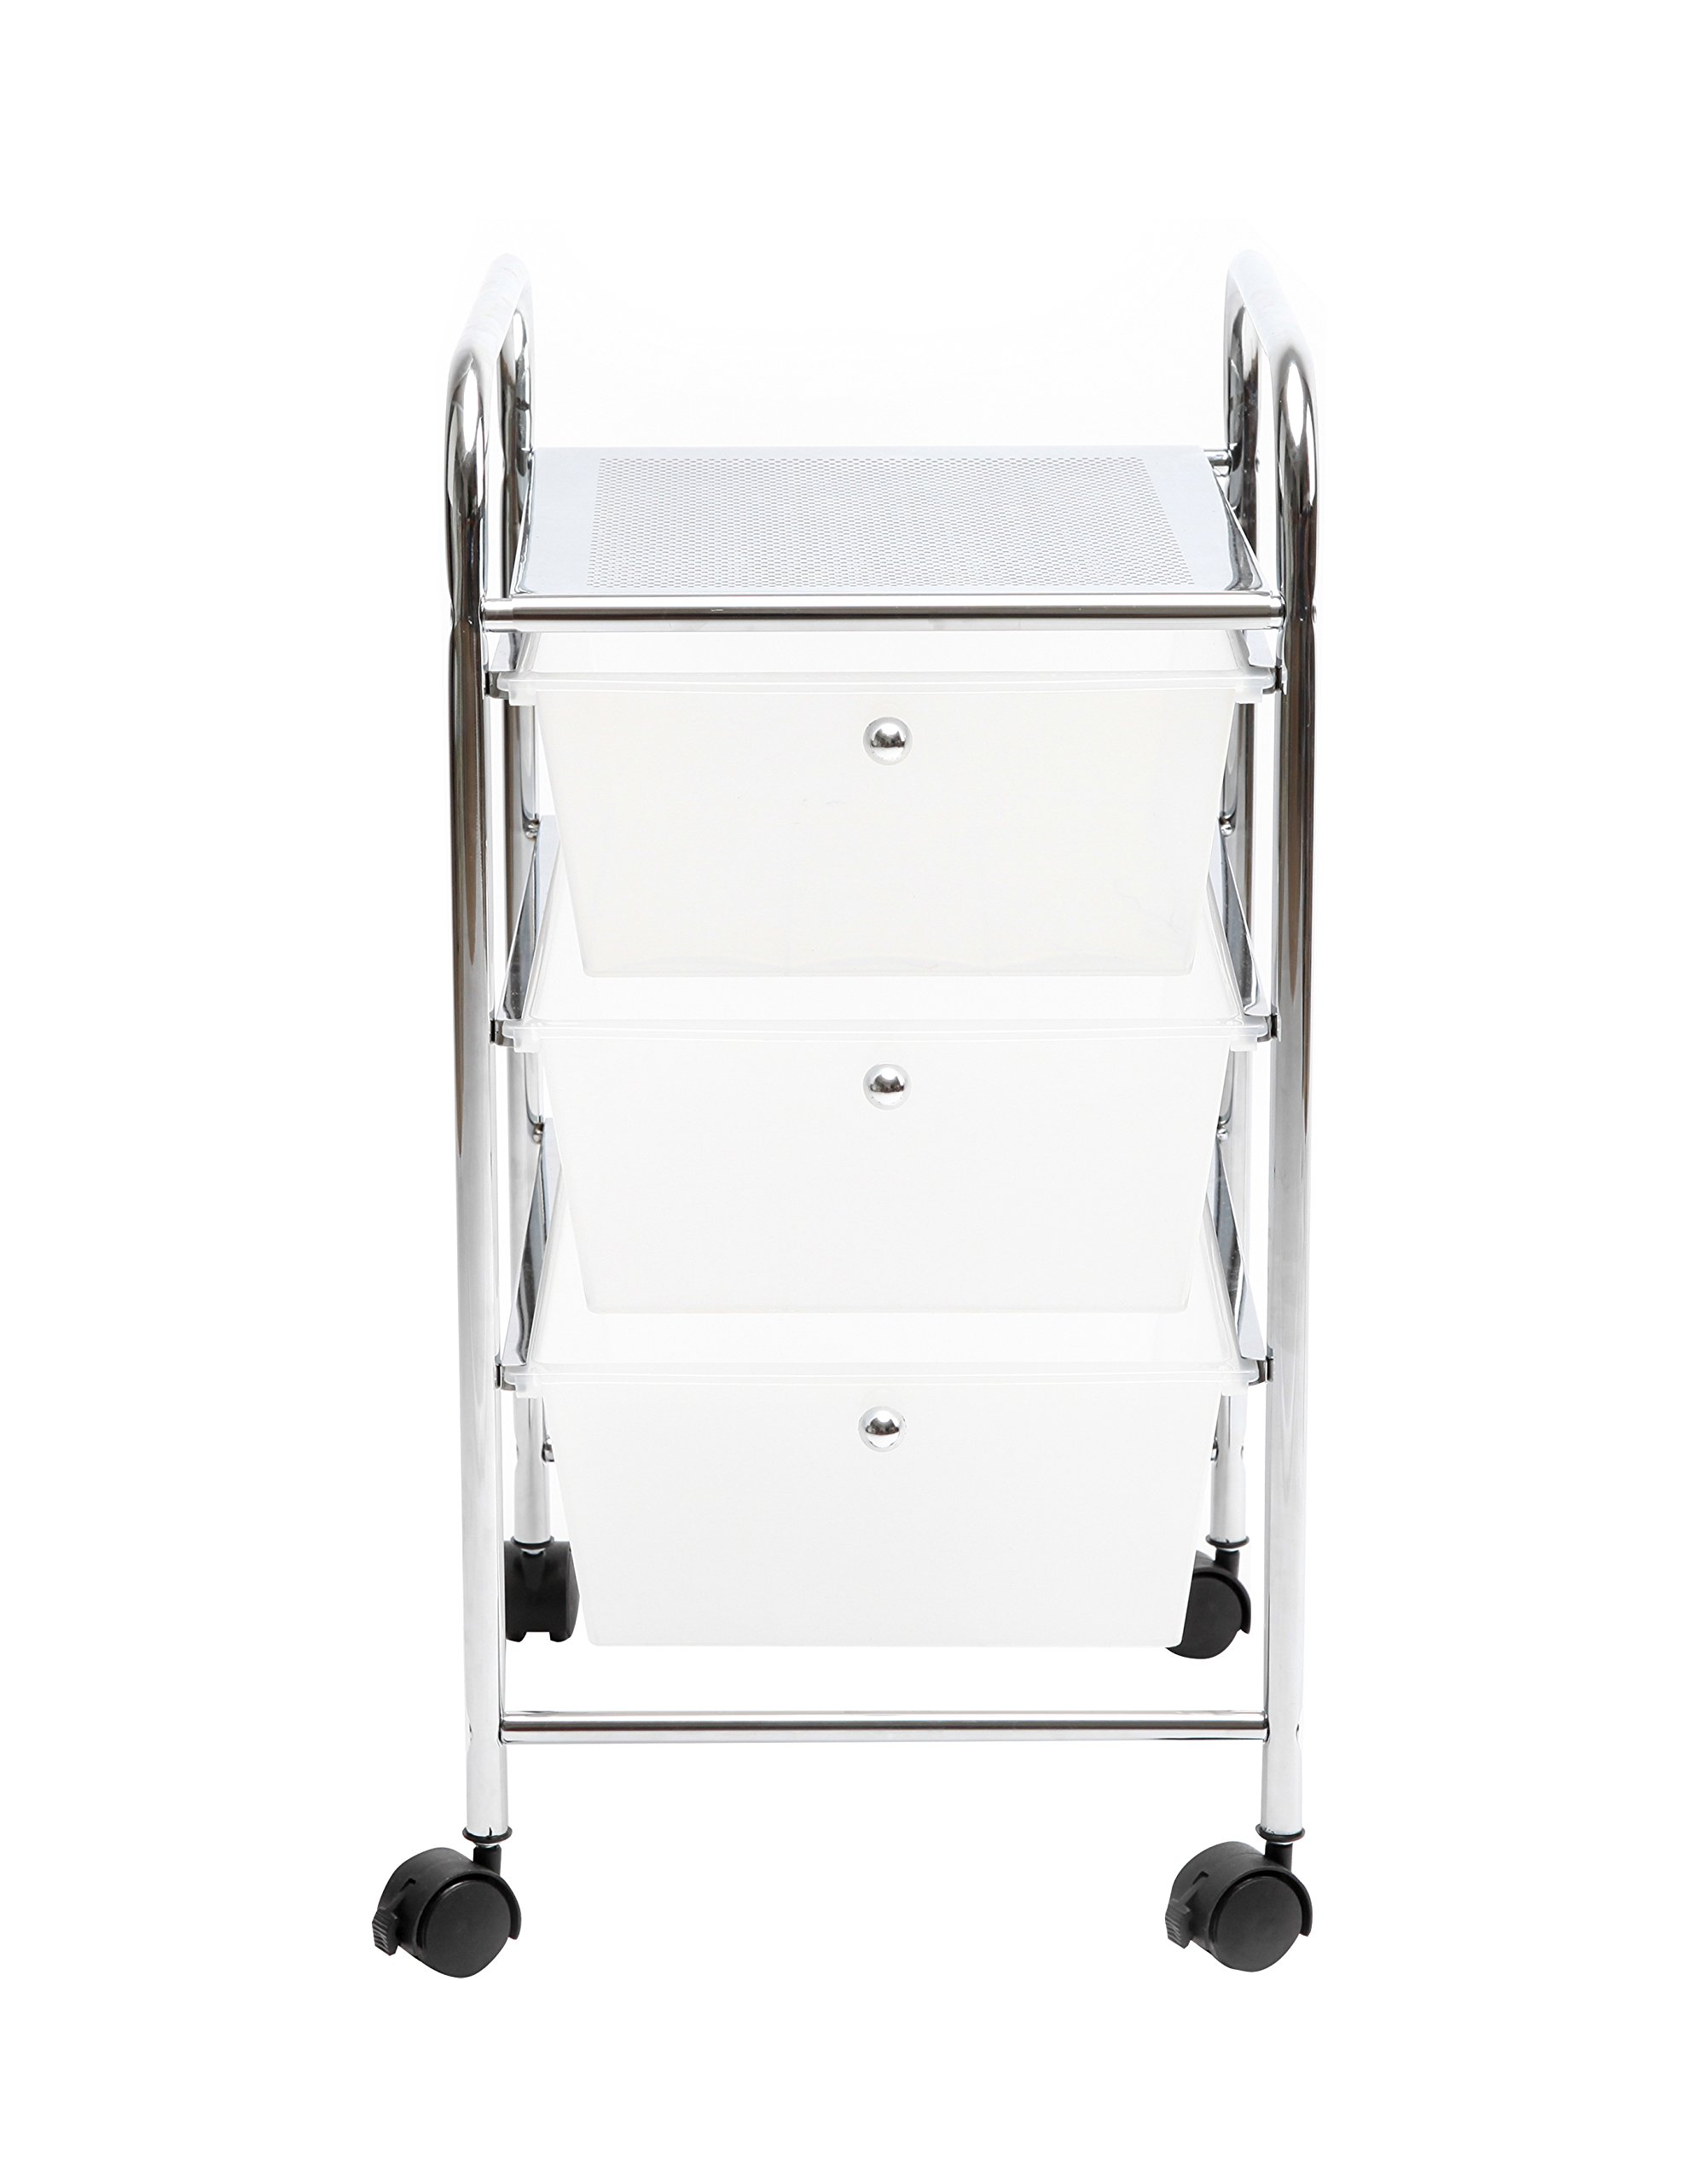 Finnhomy 3 Drawer Rolling Cart Organizer Storage Cart with Drawers Utility Cart for School Office Home Beauty Salon Storage Semi-Transparent White